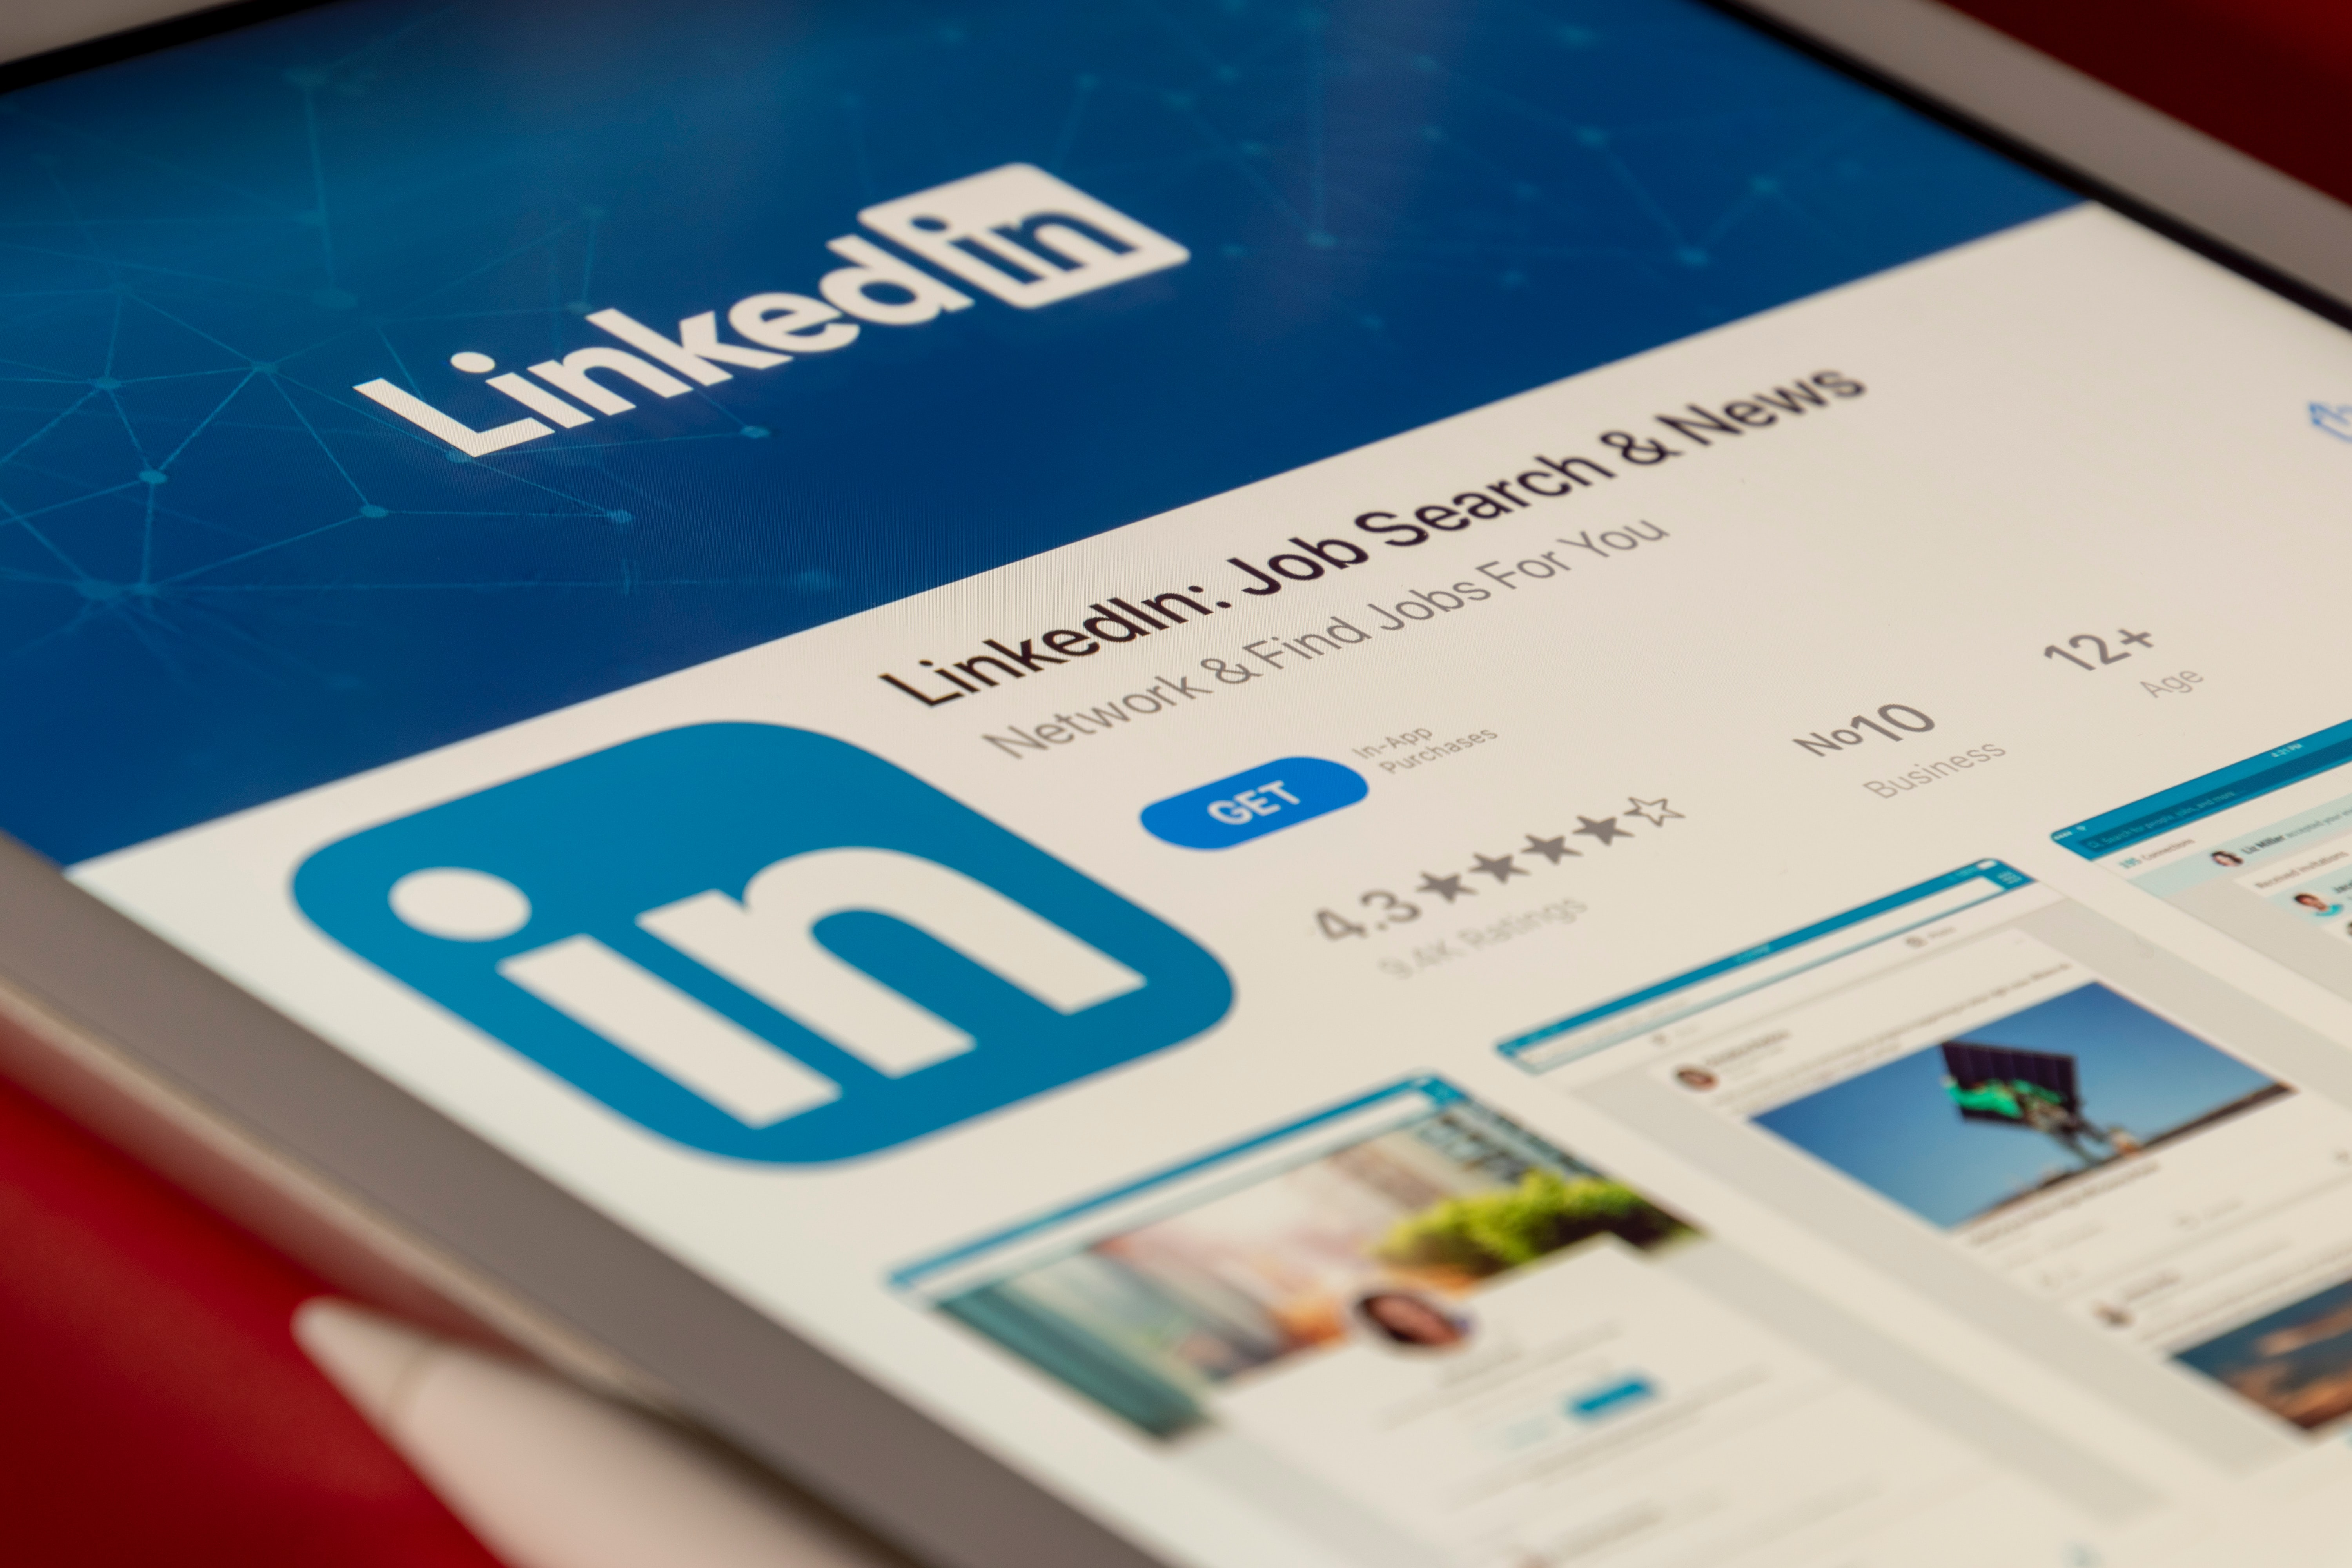 Webinar Replay: 5 Steps to Optimize your LinkedIn Profile to Generate More Business Featured Image